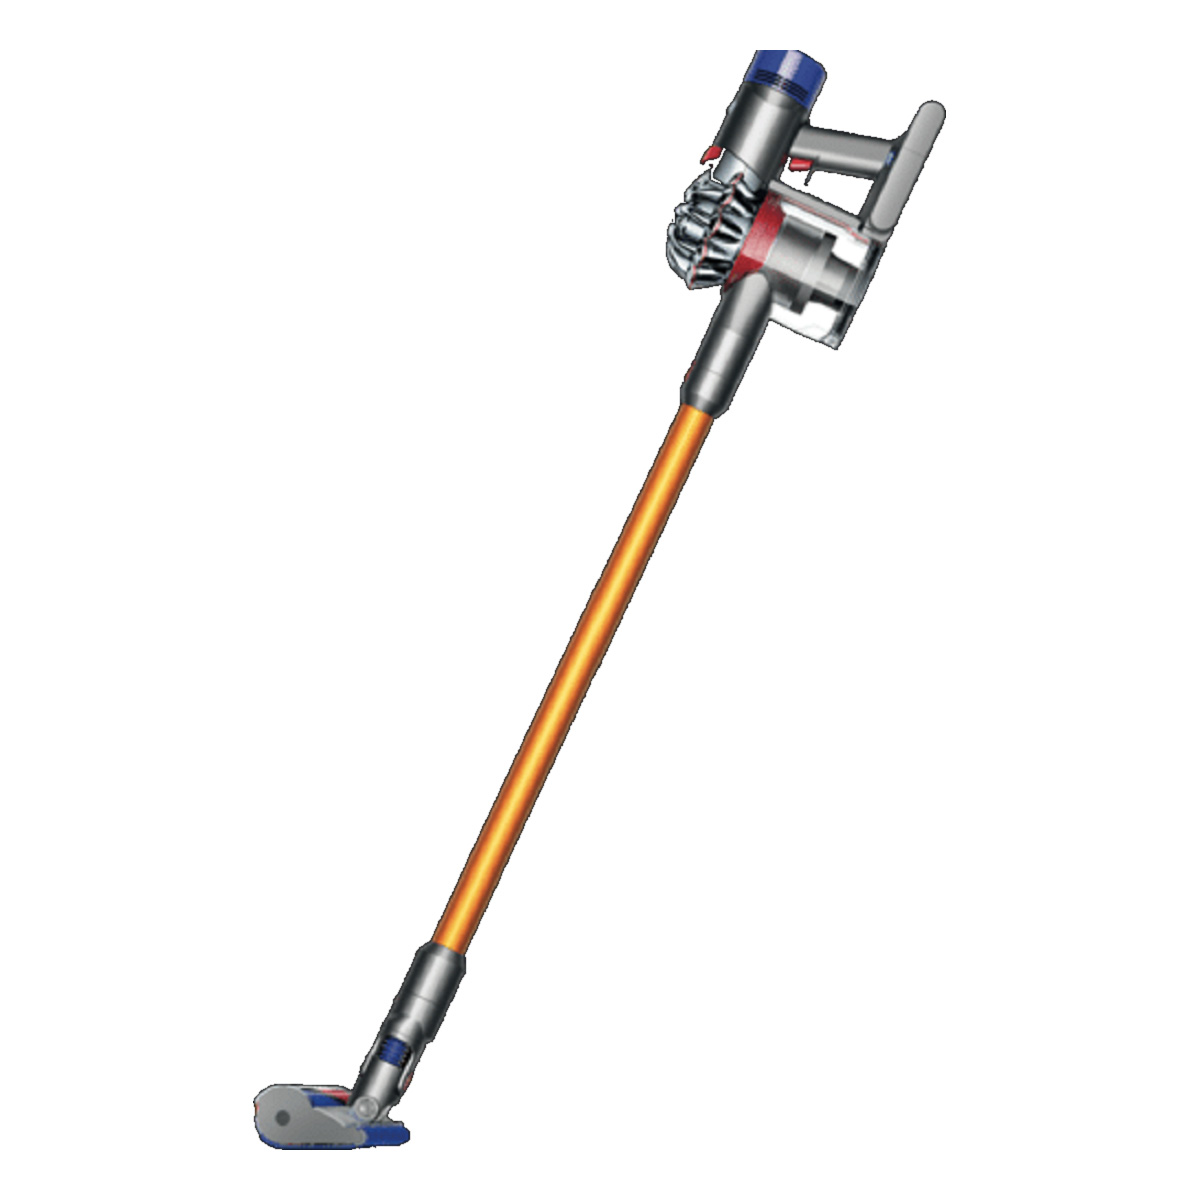 Dyson 164527-01 V8 Absolute Handstick Vacuum Cleaner